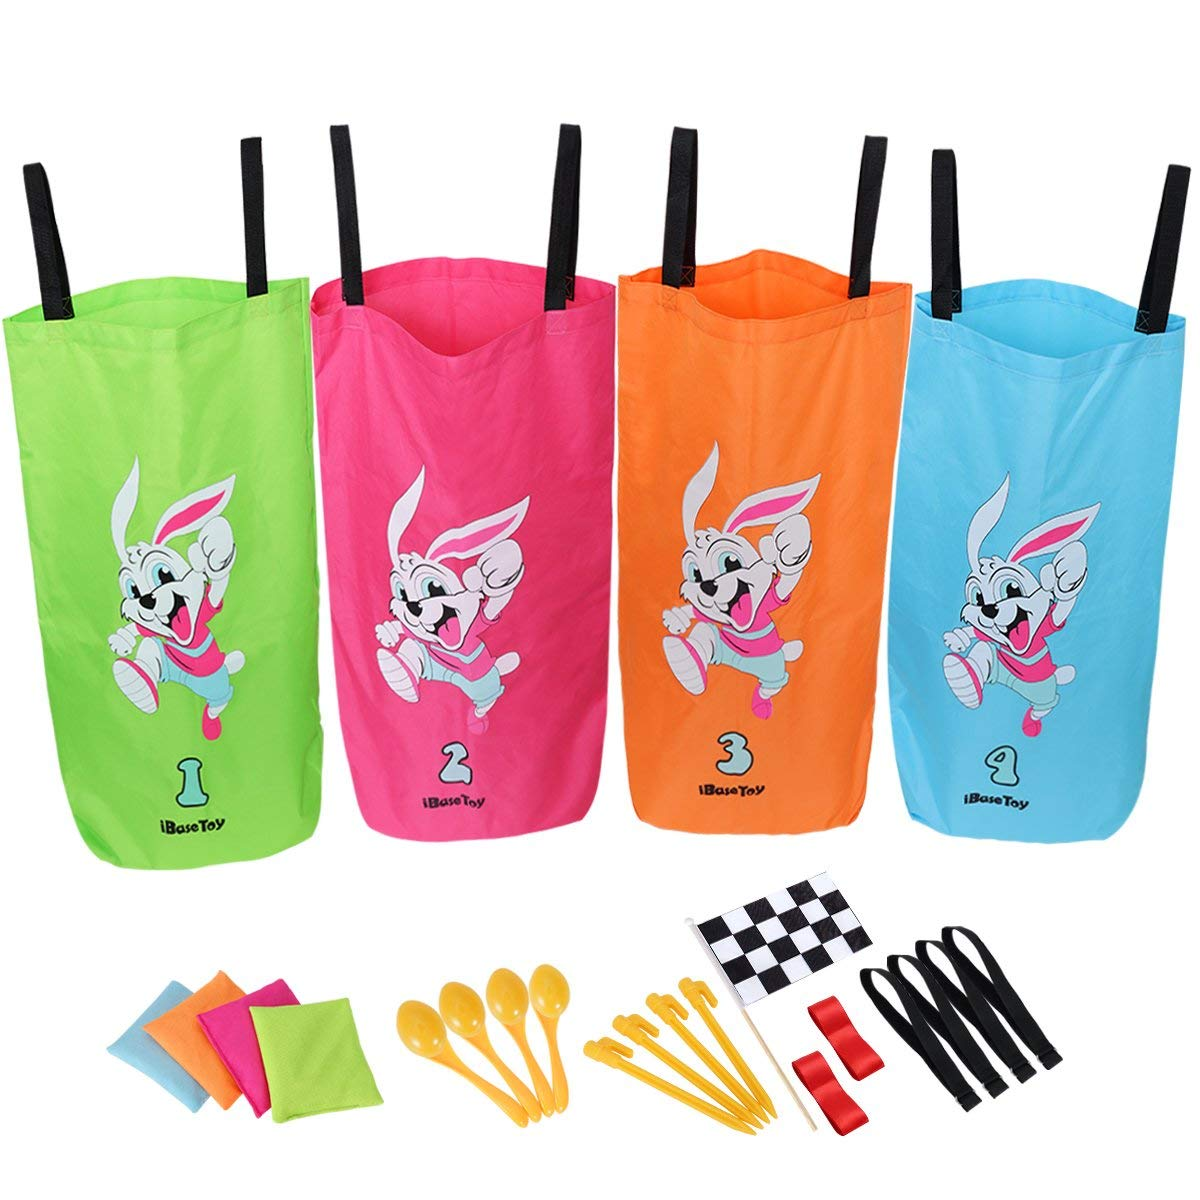 Elite Potato Sack Race Bags 3 Fun Outdoor For Kids The Legged Relay And Egg Spoon S Away In Its